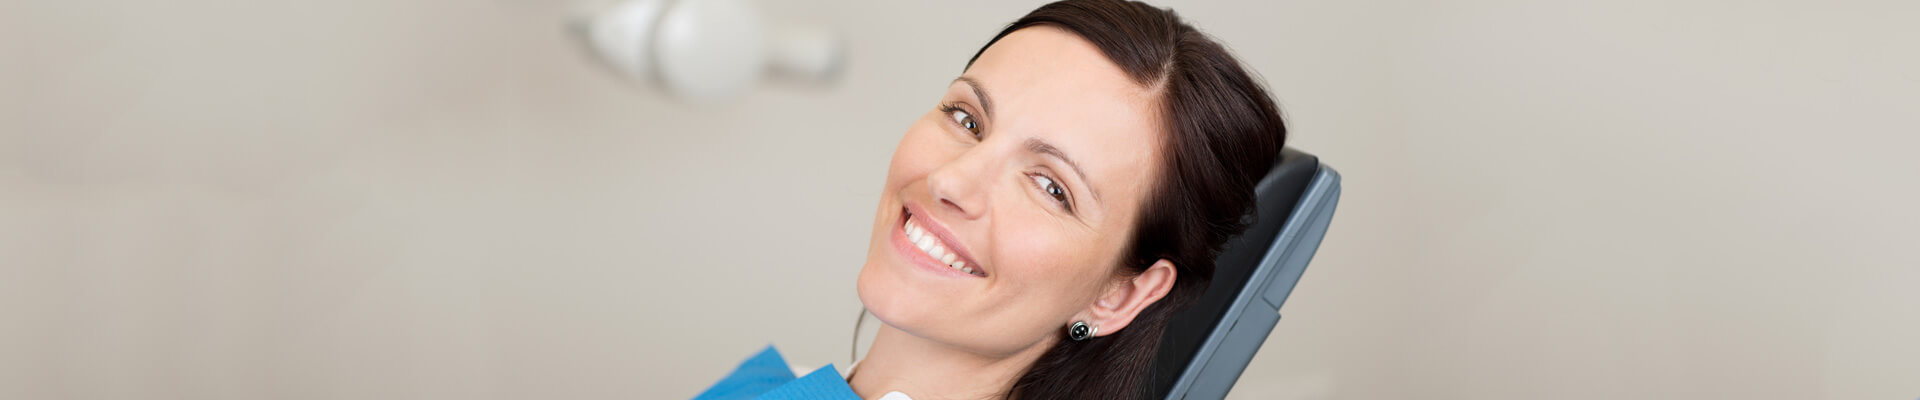 Beautiful female patient at dentist office sitting on dental chair smiling